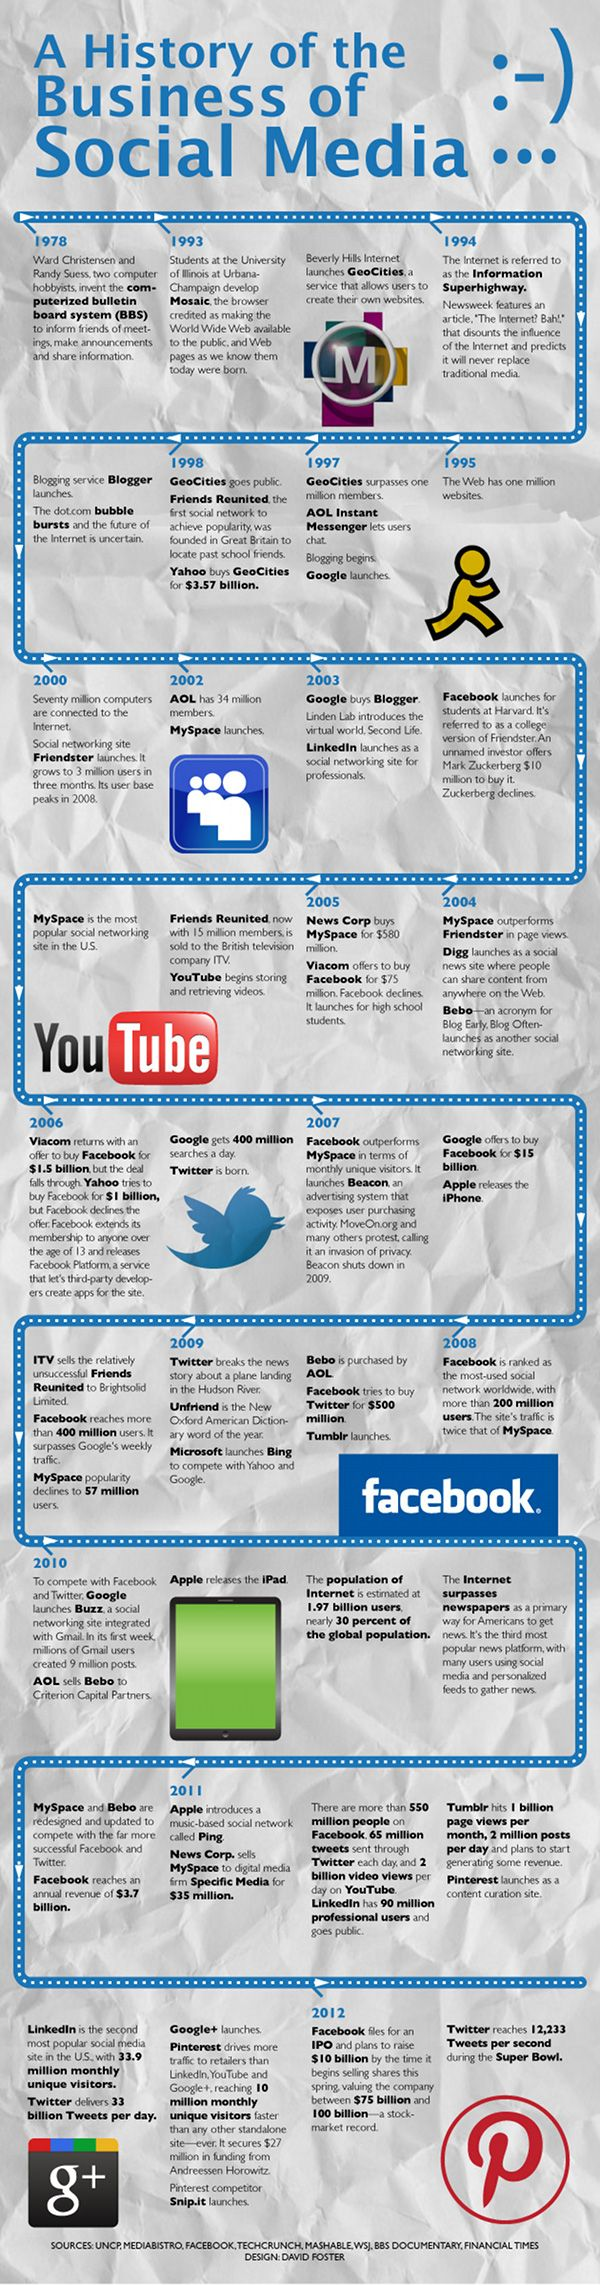 A history of the Business of Social Media.: History, Social Network, Website, Web Site, Social Media Infographic, Bulletin Boards, Internet Site, Socialmedia, Business Infographic